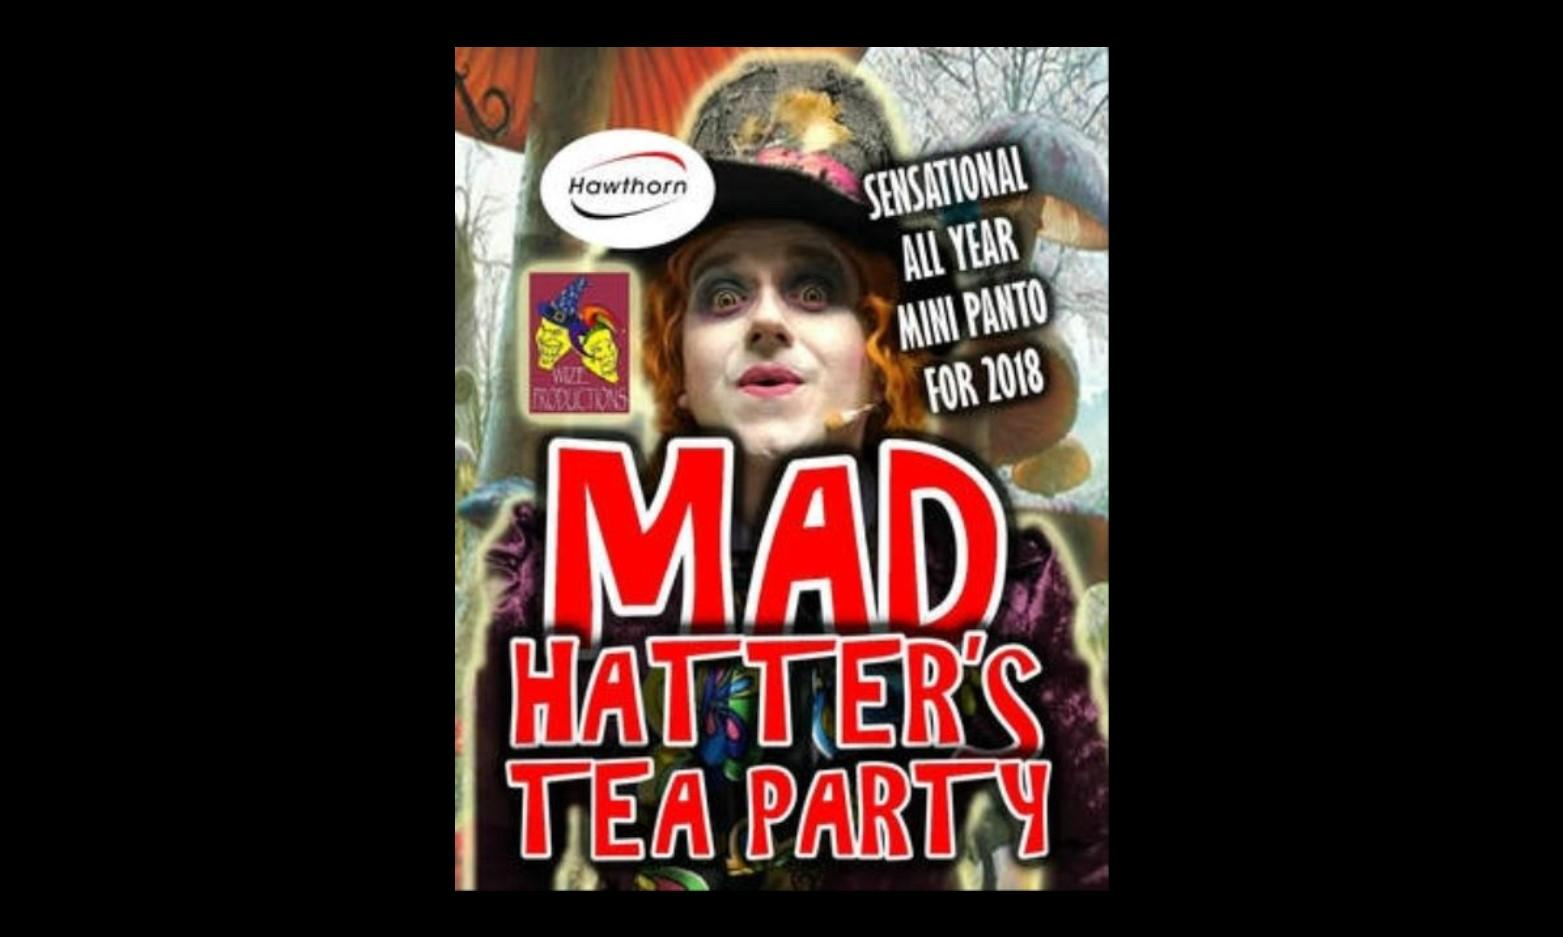 The Mad Hatter's Tea Party in Narberth